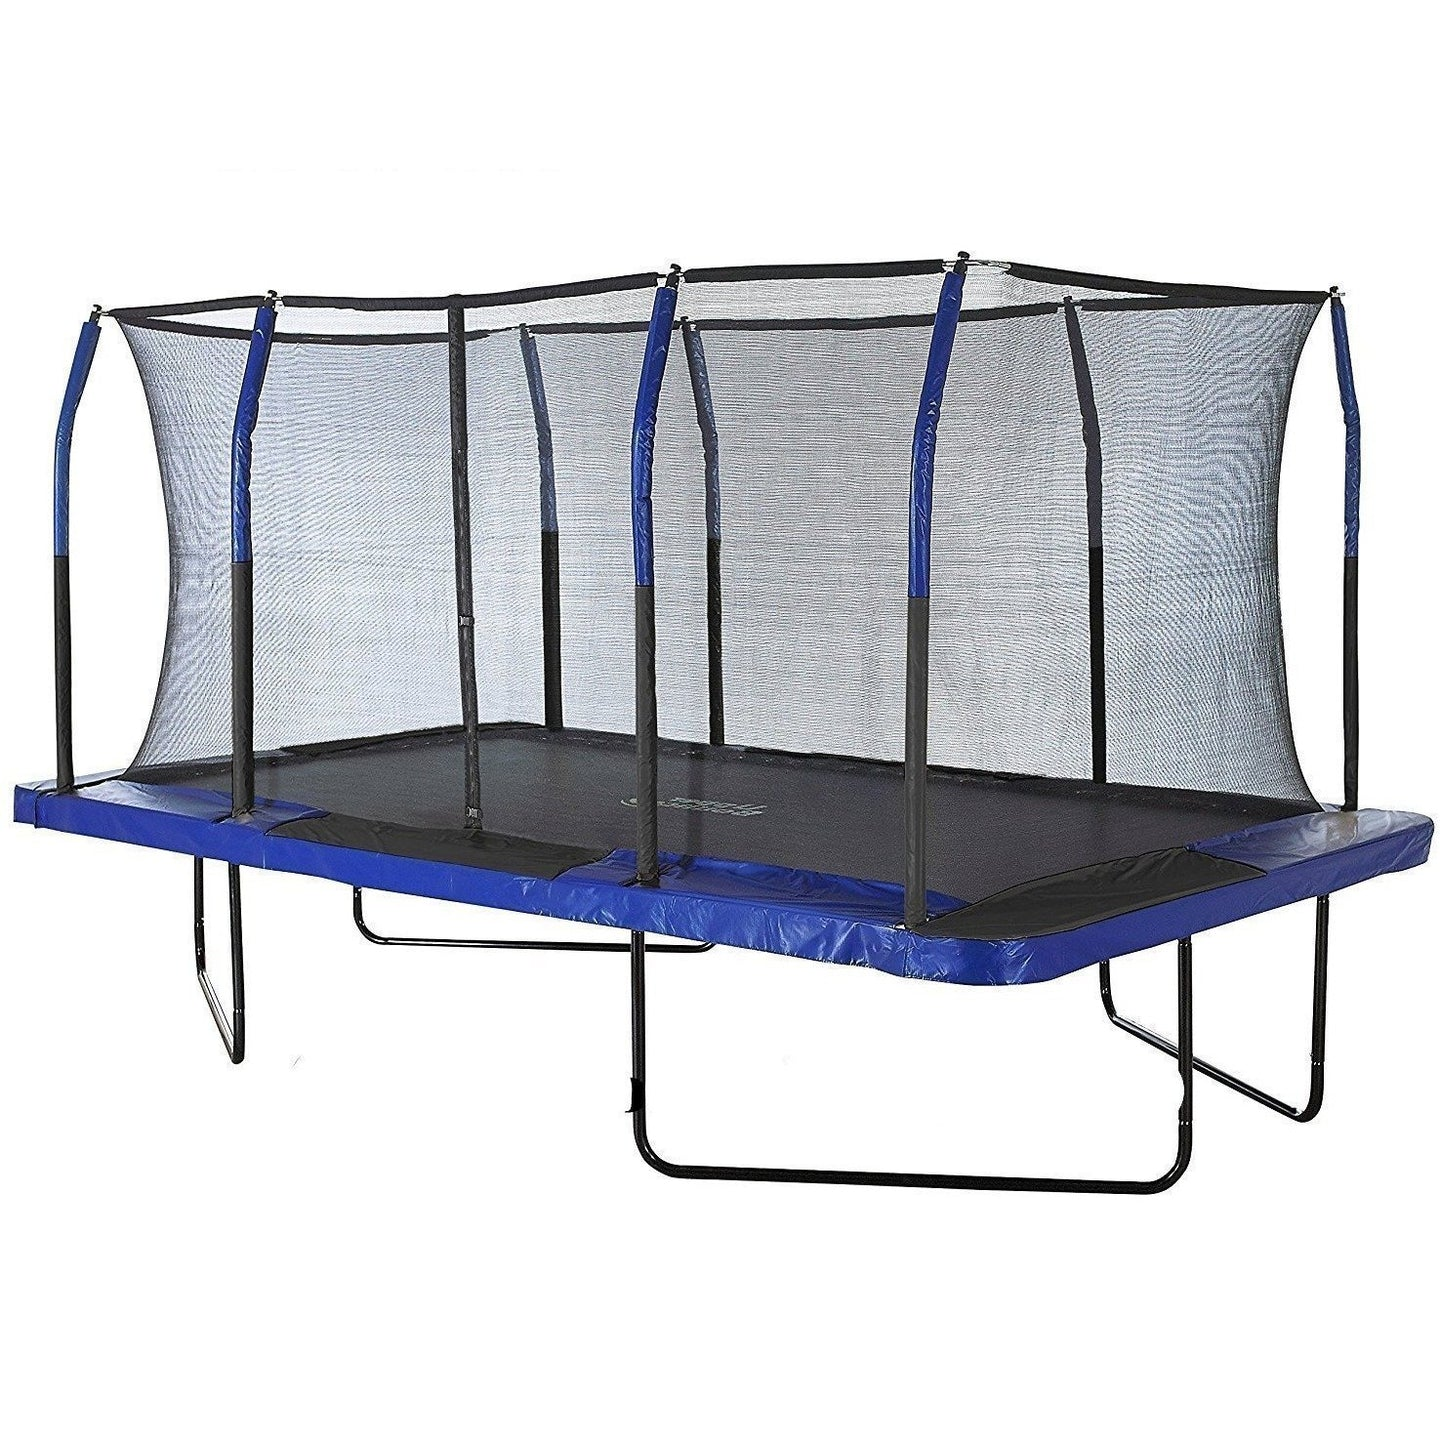 Upper Bounce Mega 8ft X 14ft Rectangular Trampoline with Net Enclosure